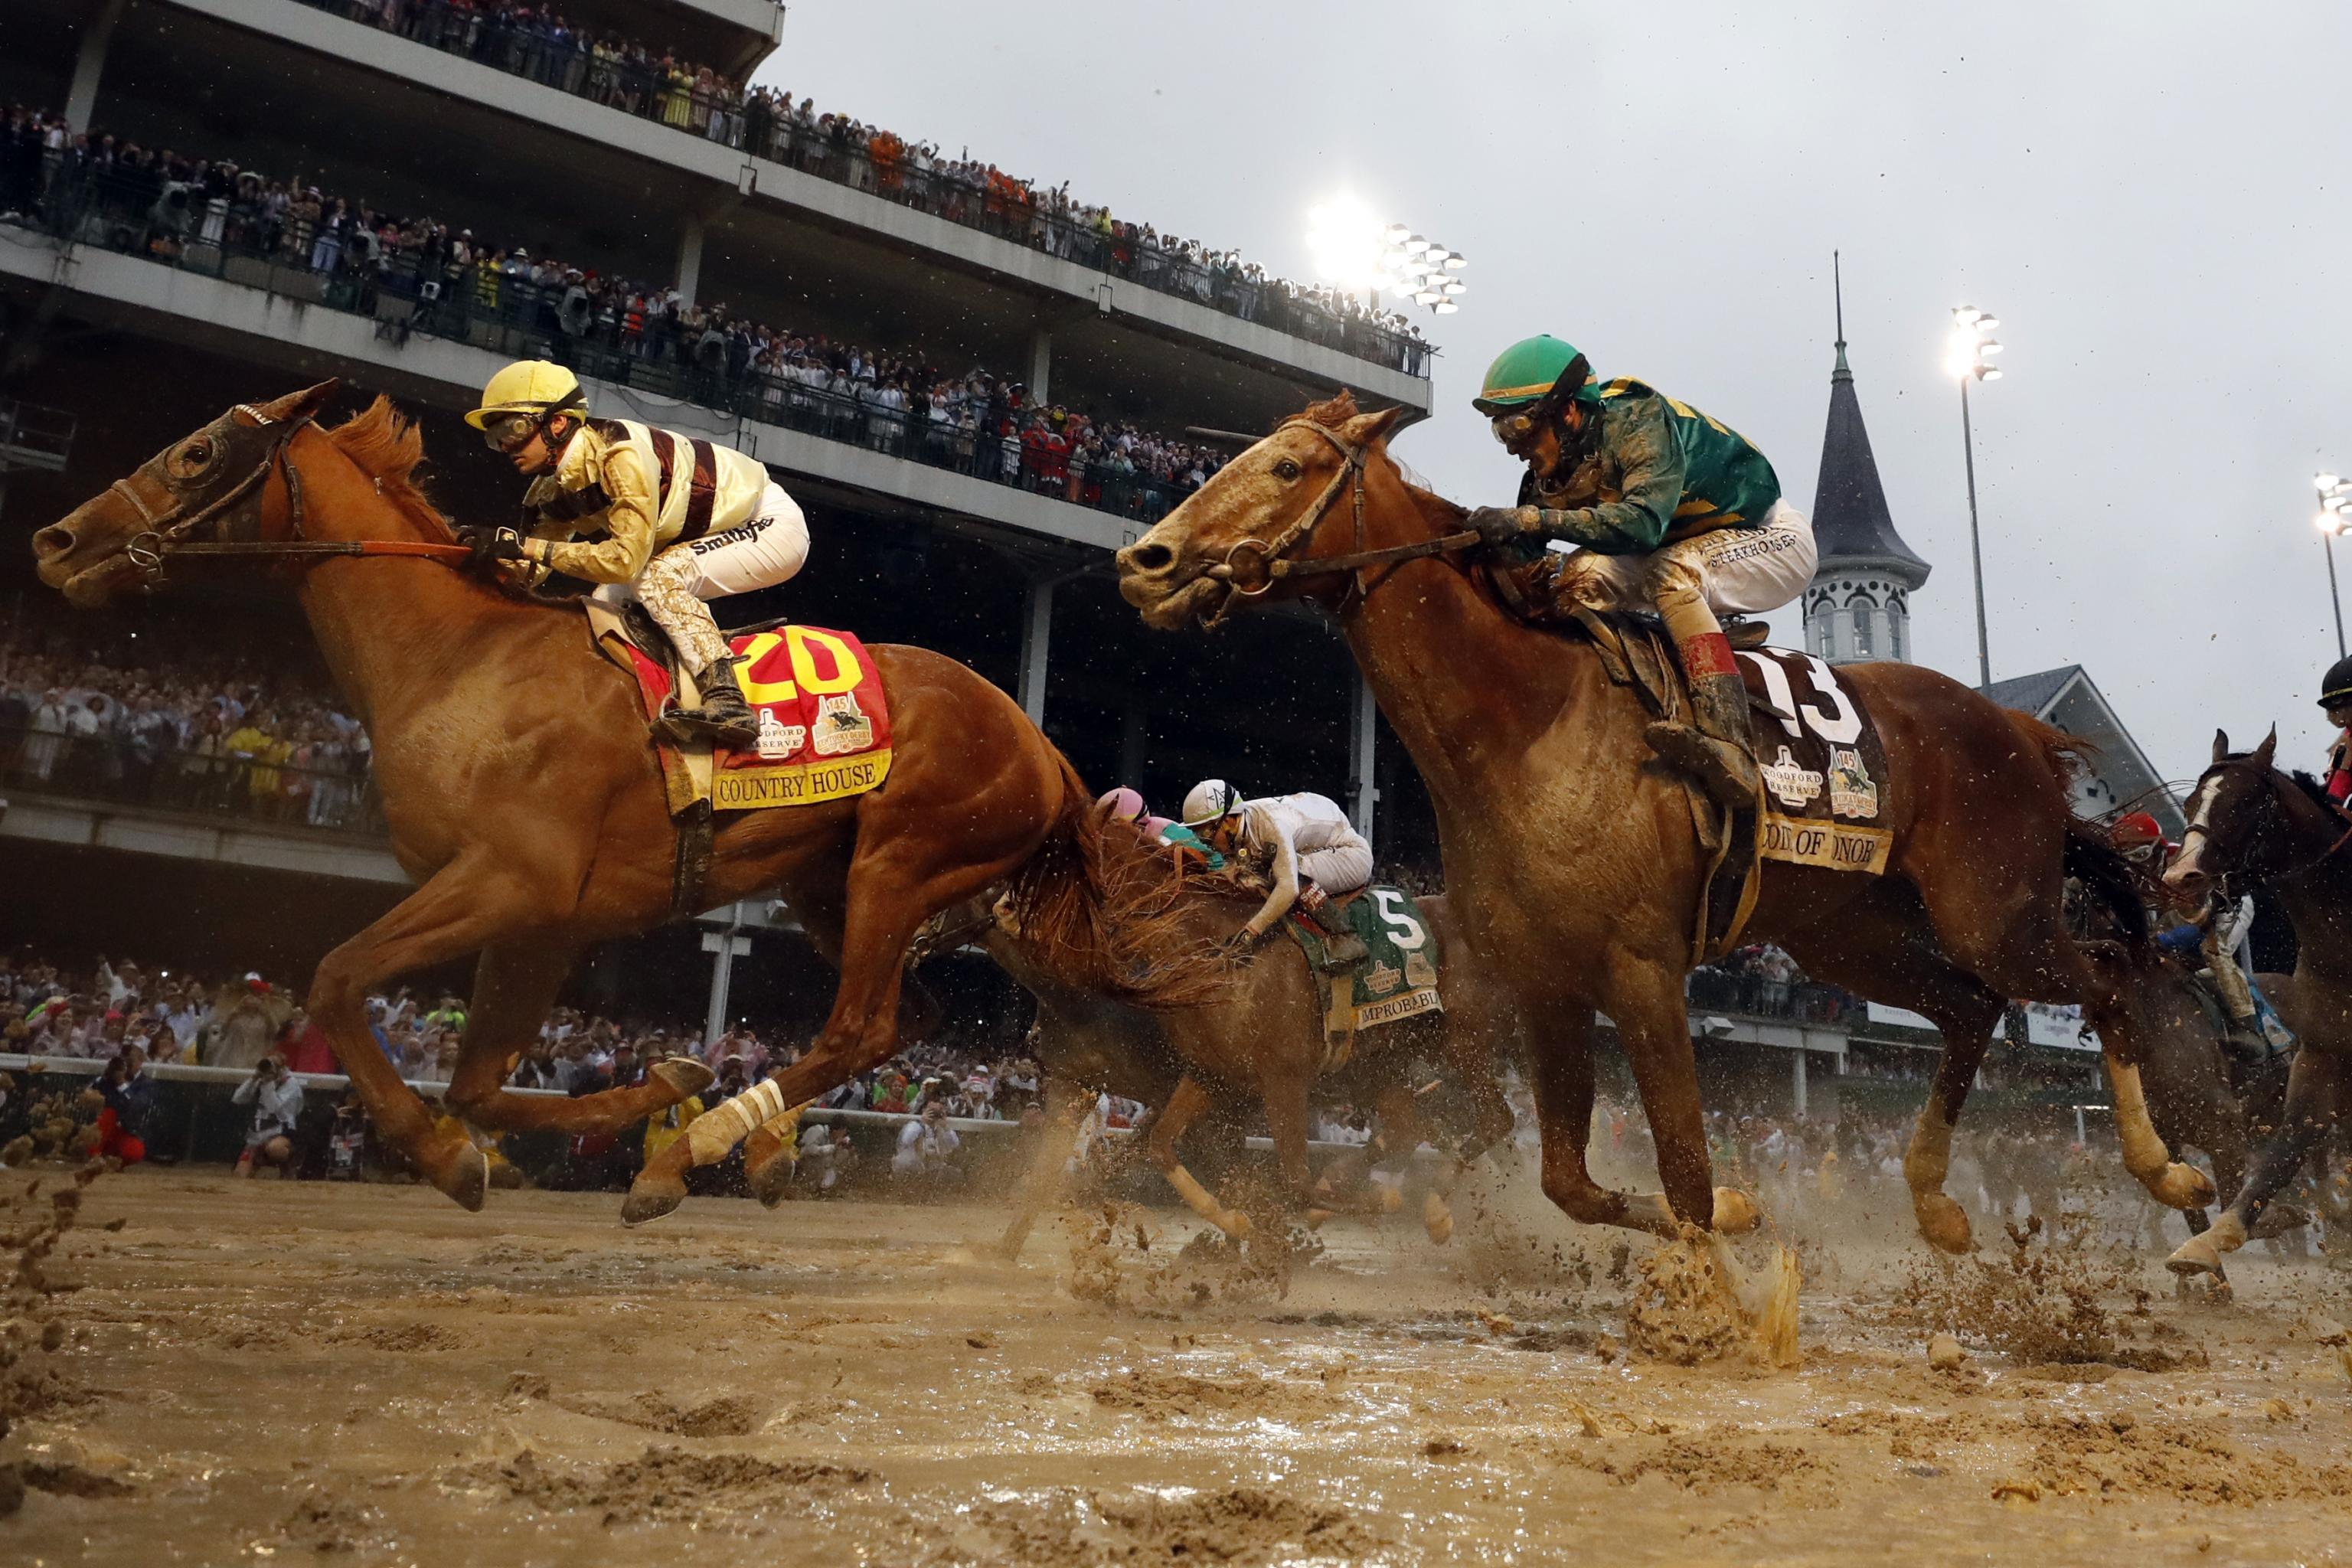 Kentucky Derby 2019: Results, Winner, Payouts and Comments